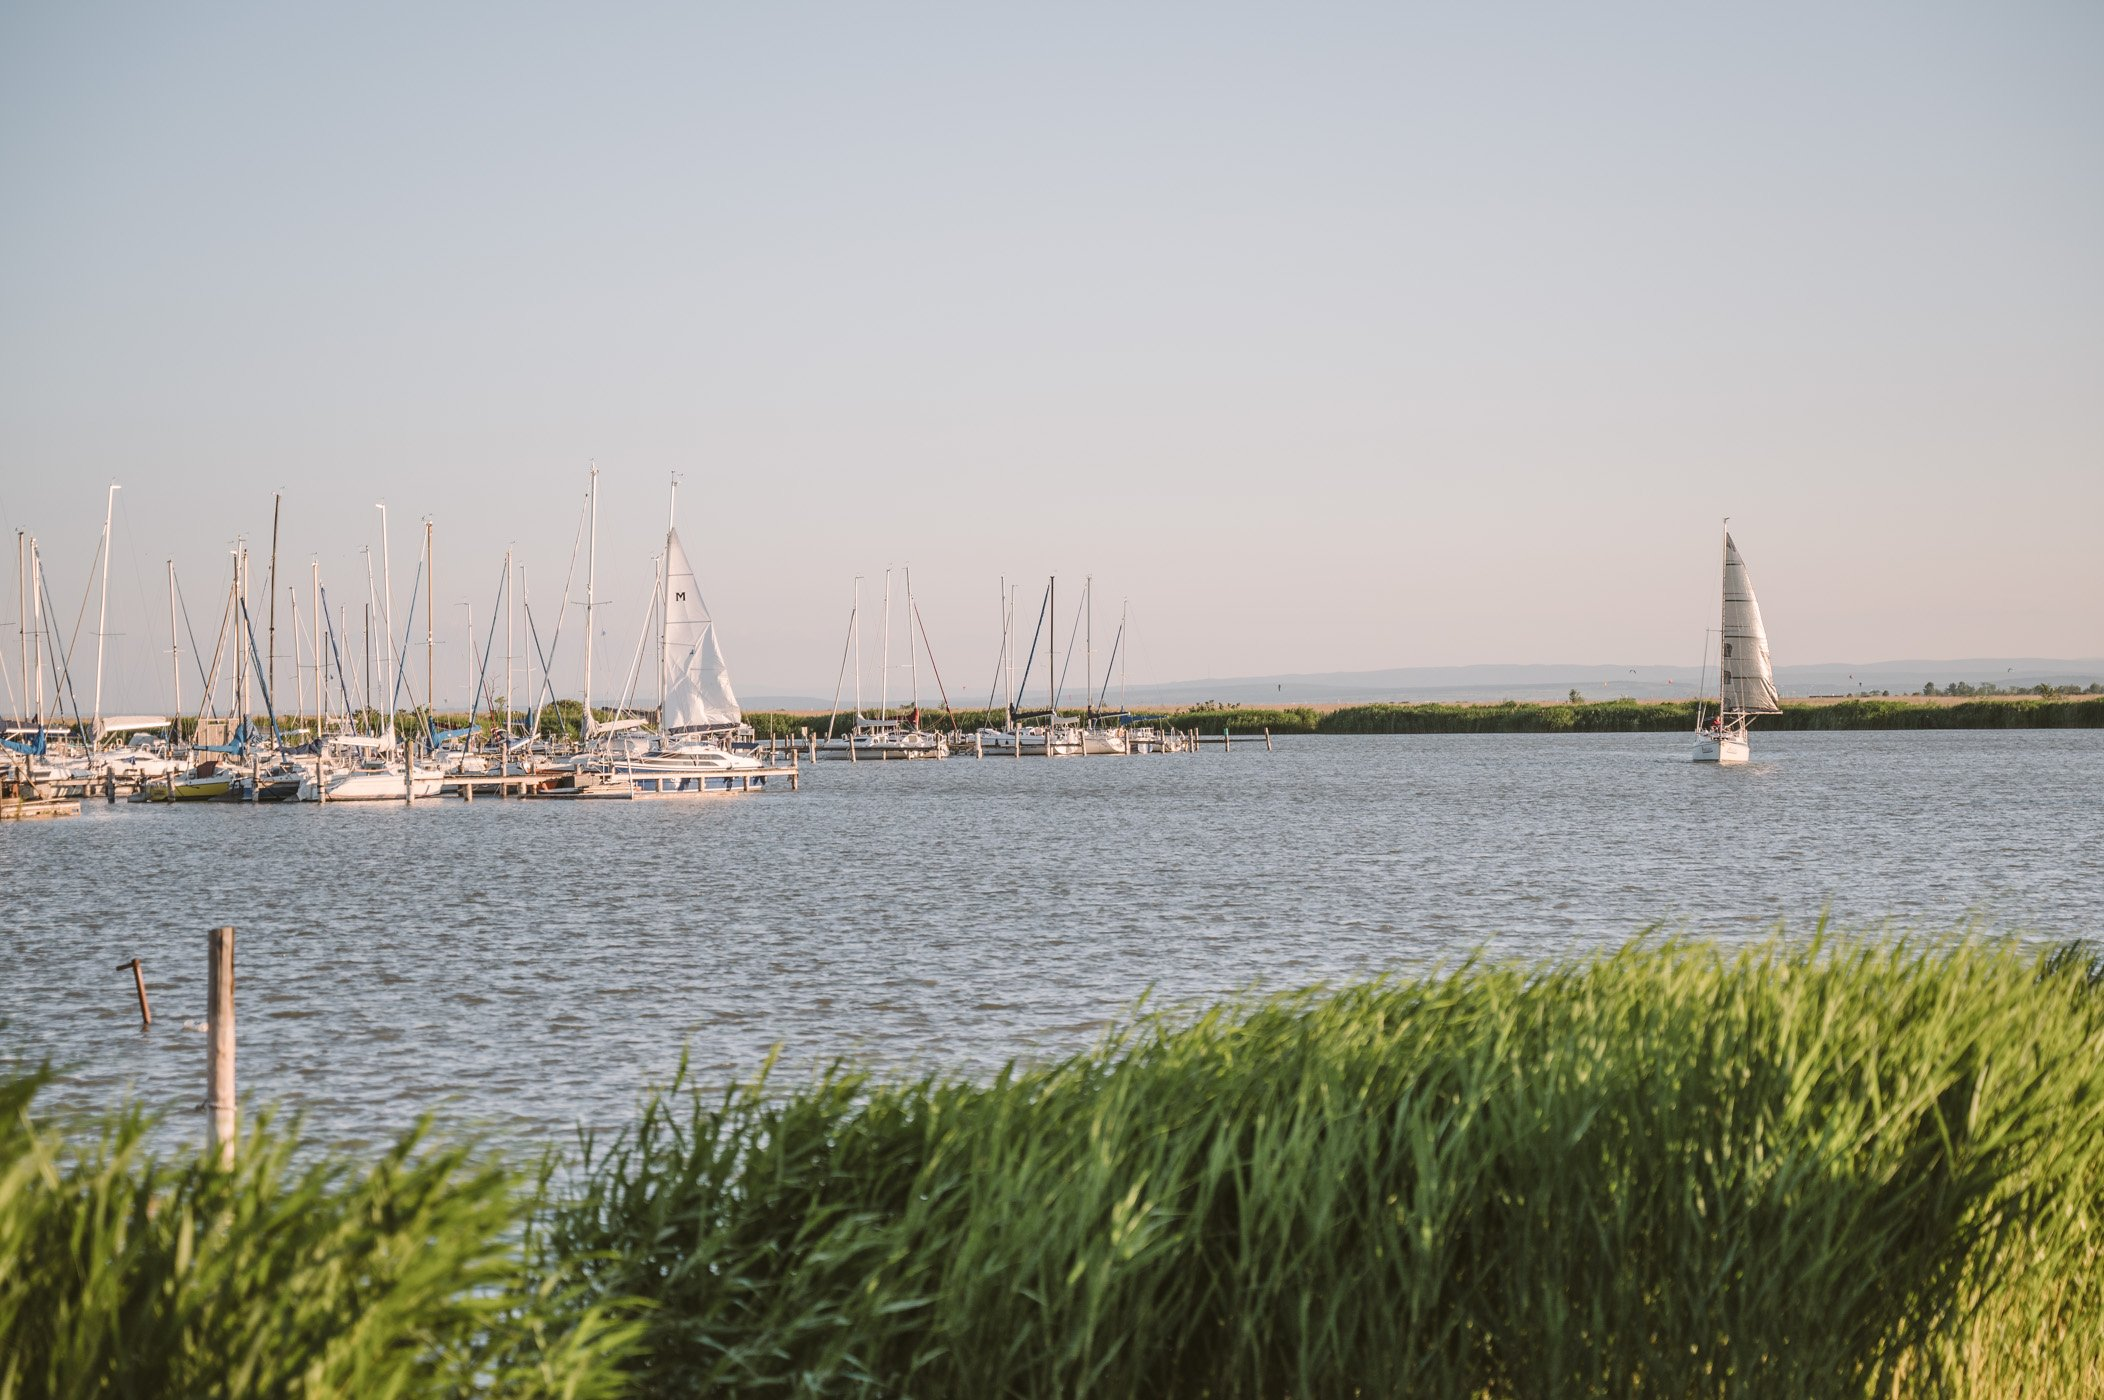 Yacht harbour of Jois at lake Neusiedlersee